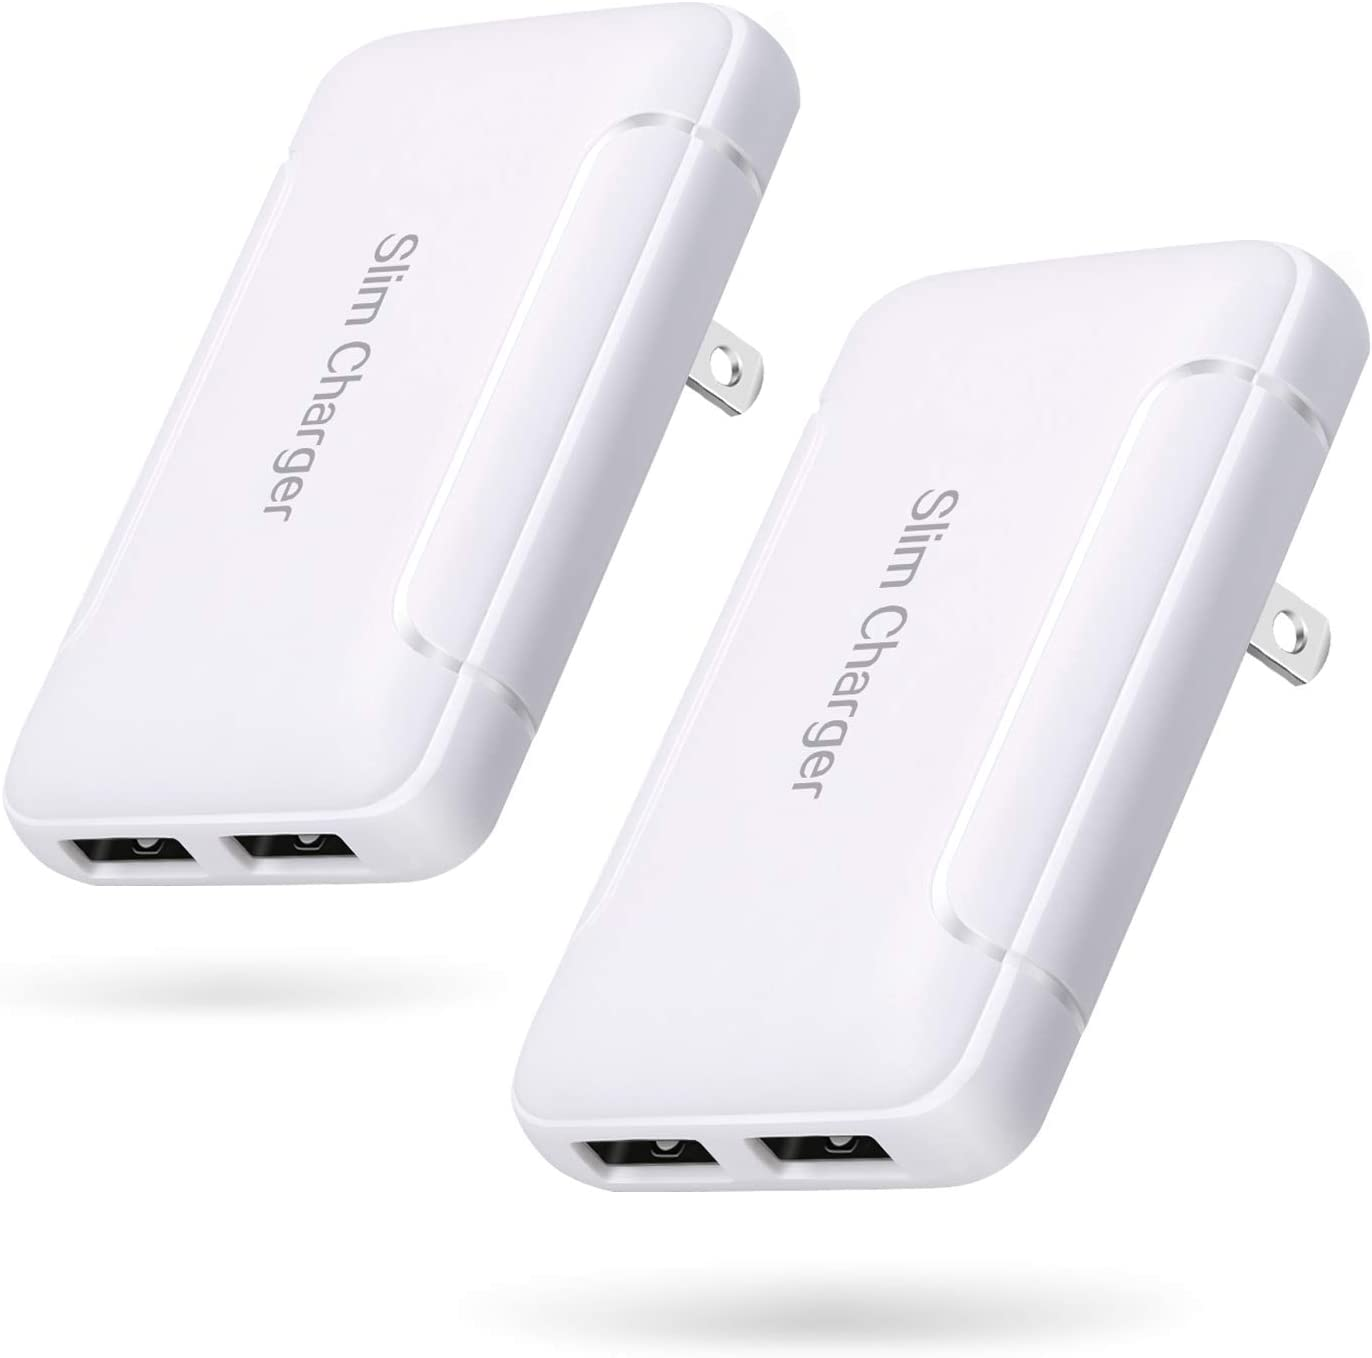 USB Wall Charger, Foldable Charger Adapter, Pofesun 2-Pack Dual Port Foldable Fast Charger Block Power Adapter Compatible for iPhone 11/ Pro/MAX/X/XS/XR/XS Max/8/7/6/Plus,iPad,Samsung Galaxy-White